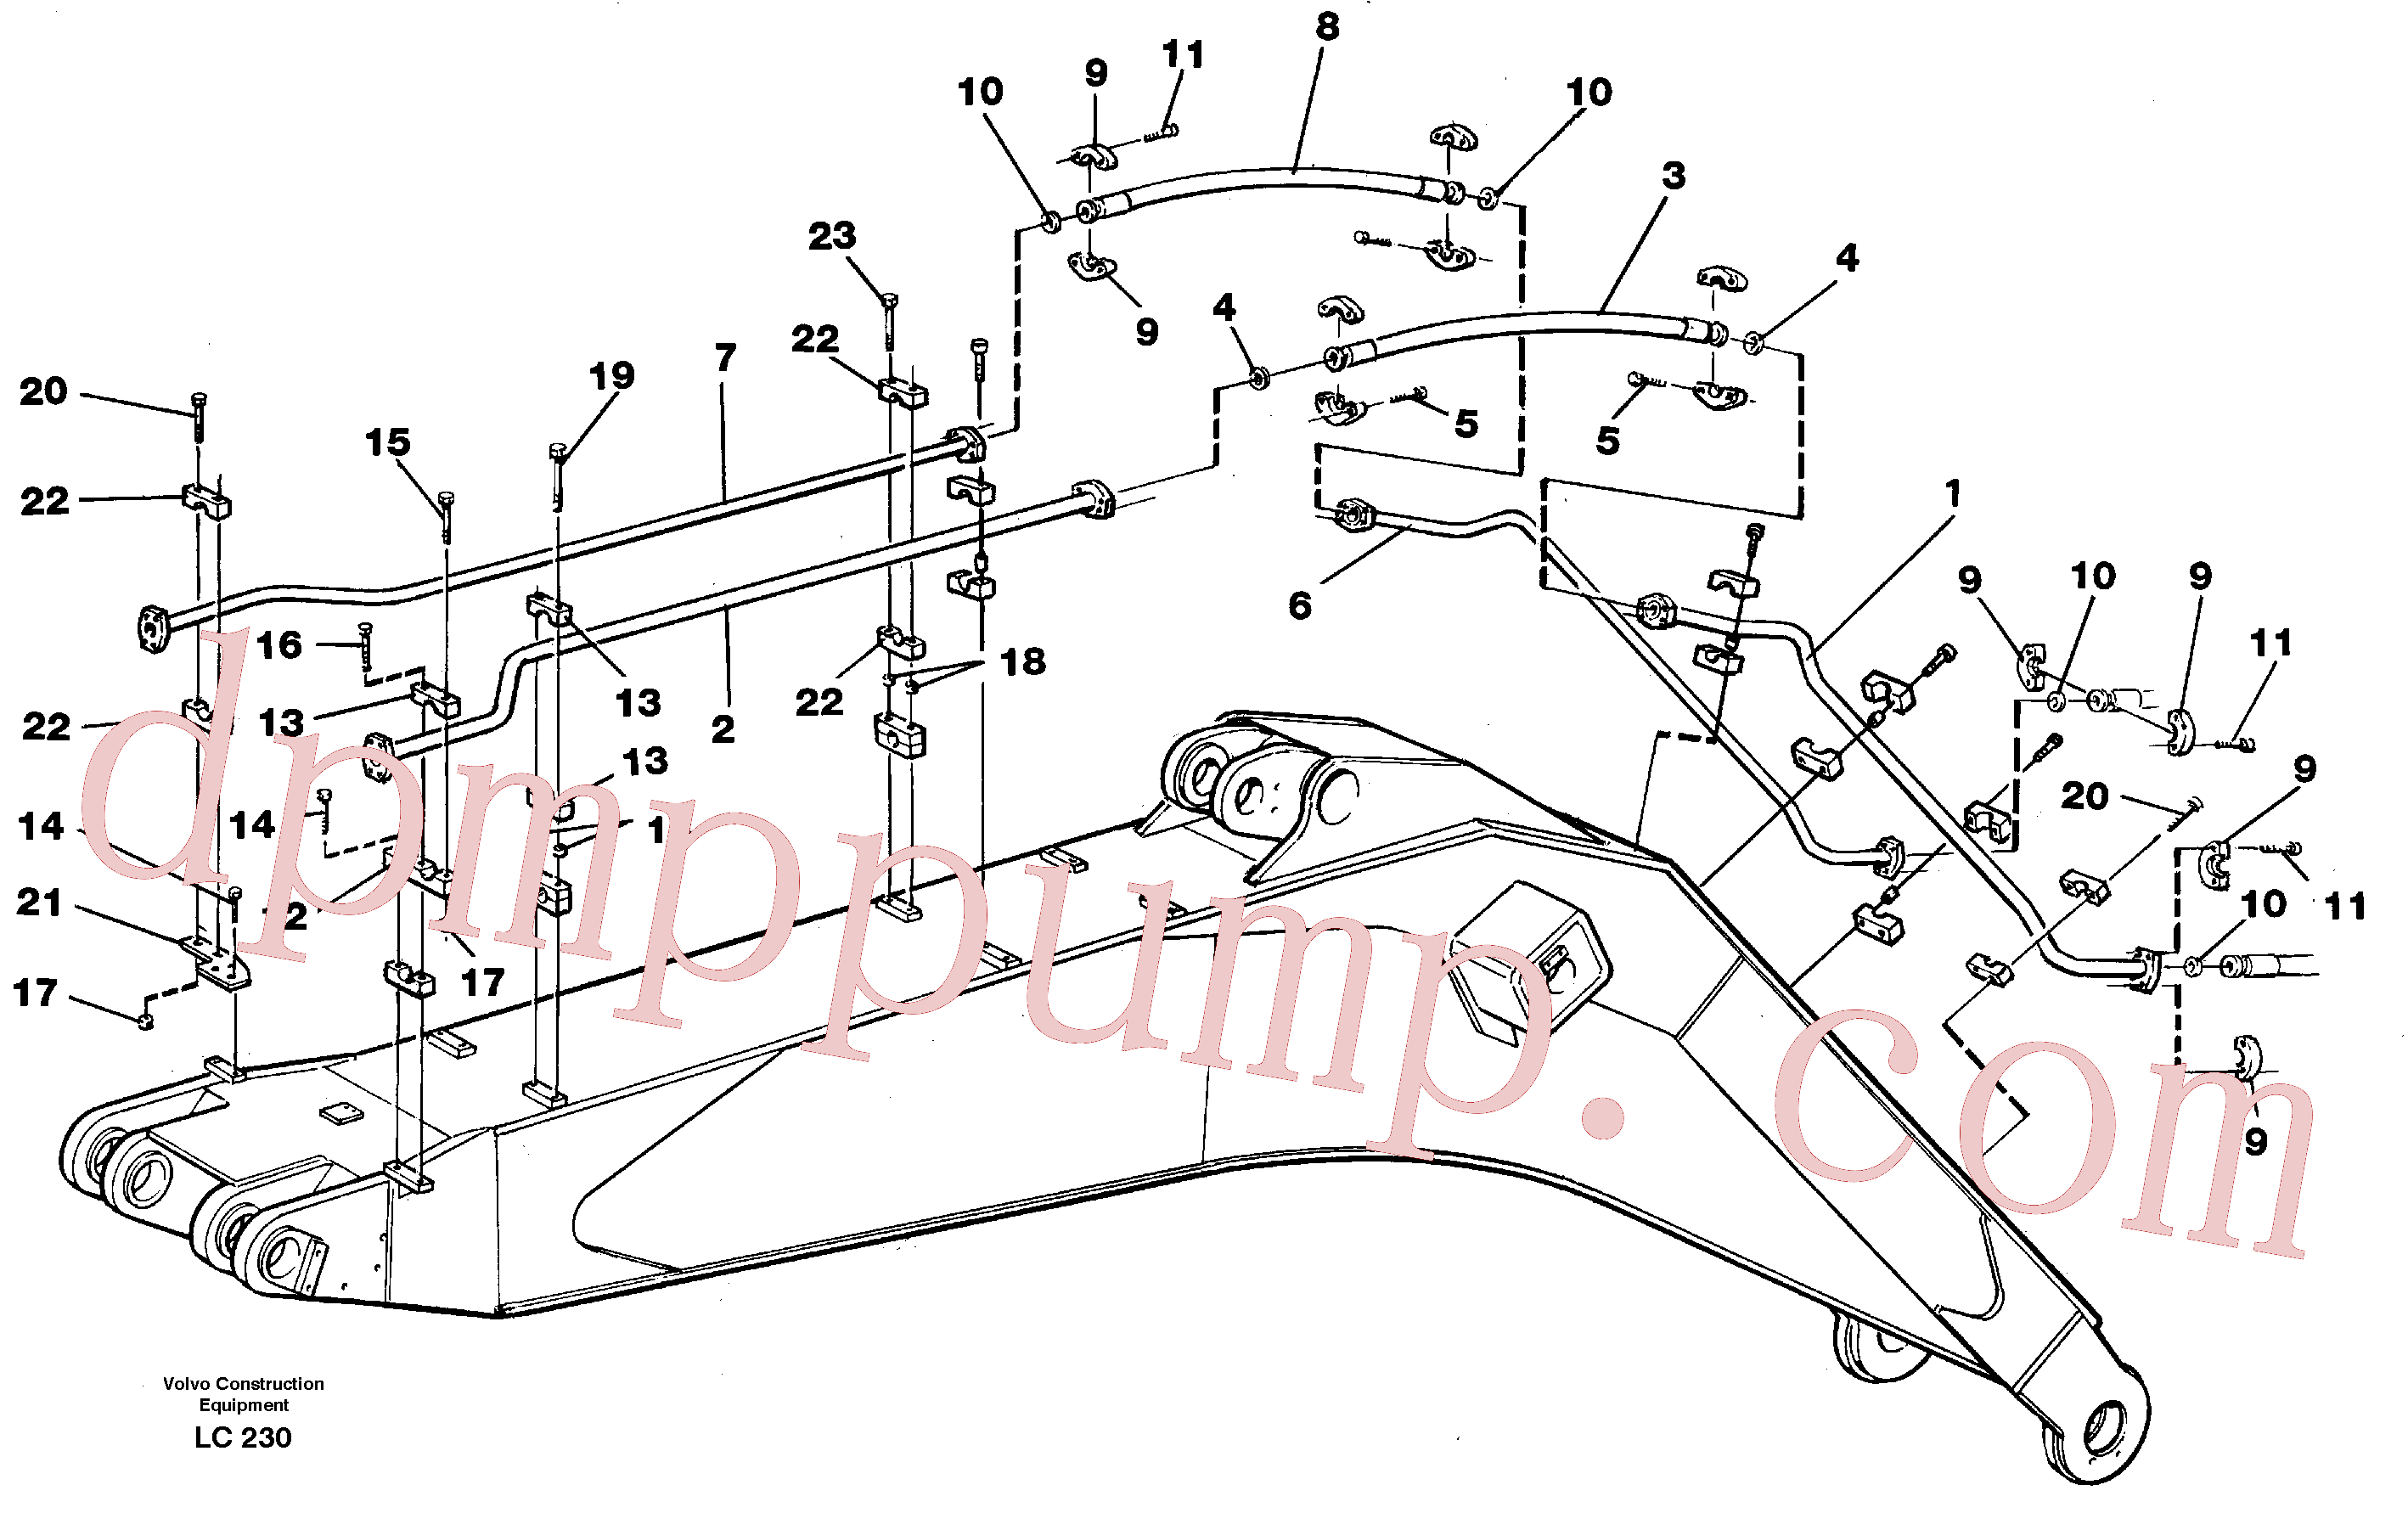 VOE14266229 for Volvo Hammer hydraulics on boom, 6.6 M(LC230 assembly)